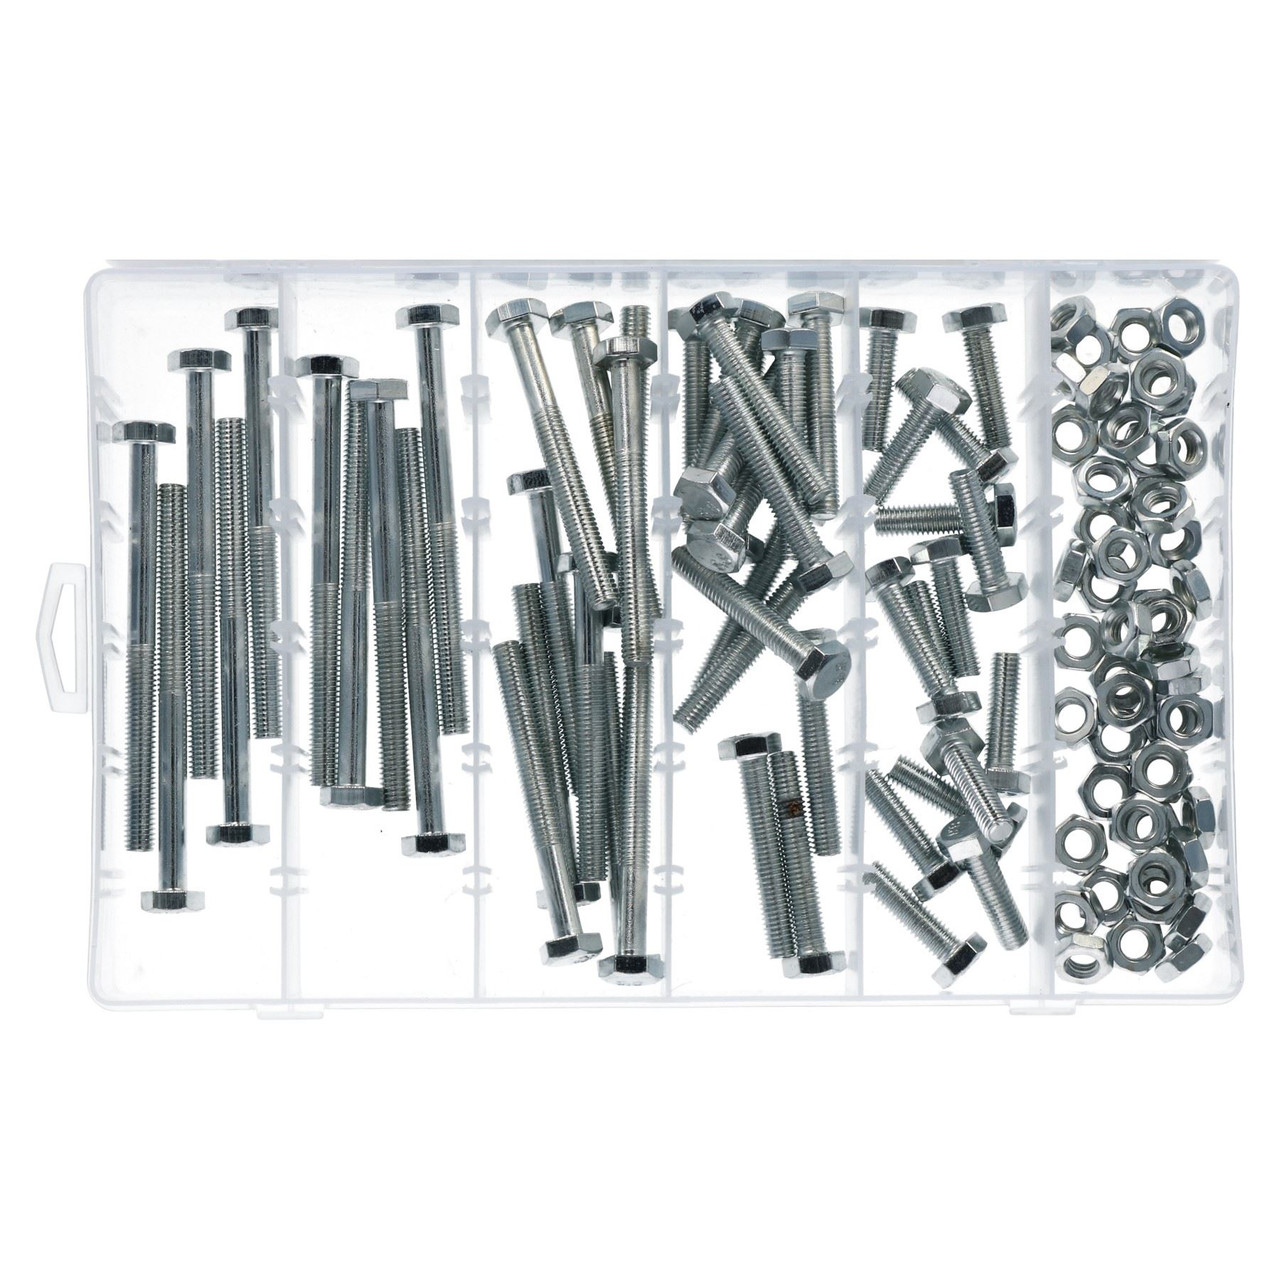 M10 x 1.5 100pc Nut And Bolt Set 10mm Thread Various Length 30-100mm Bolts